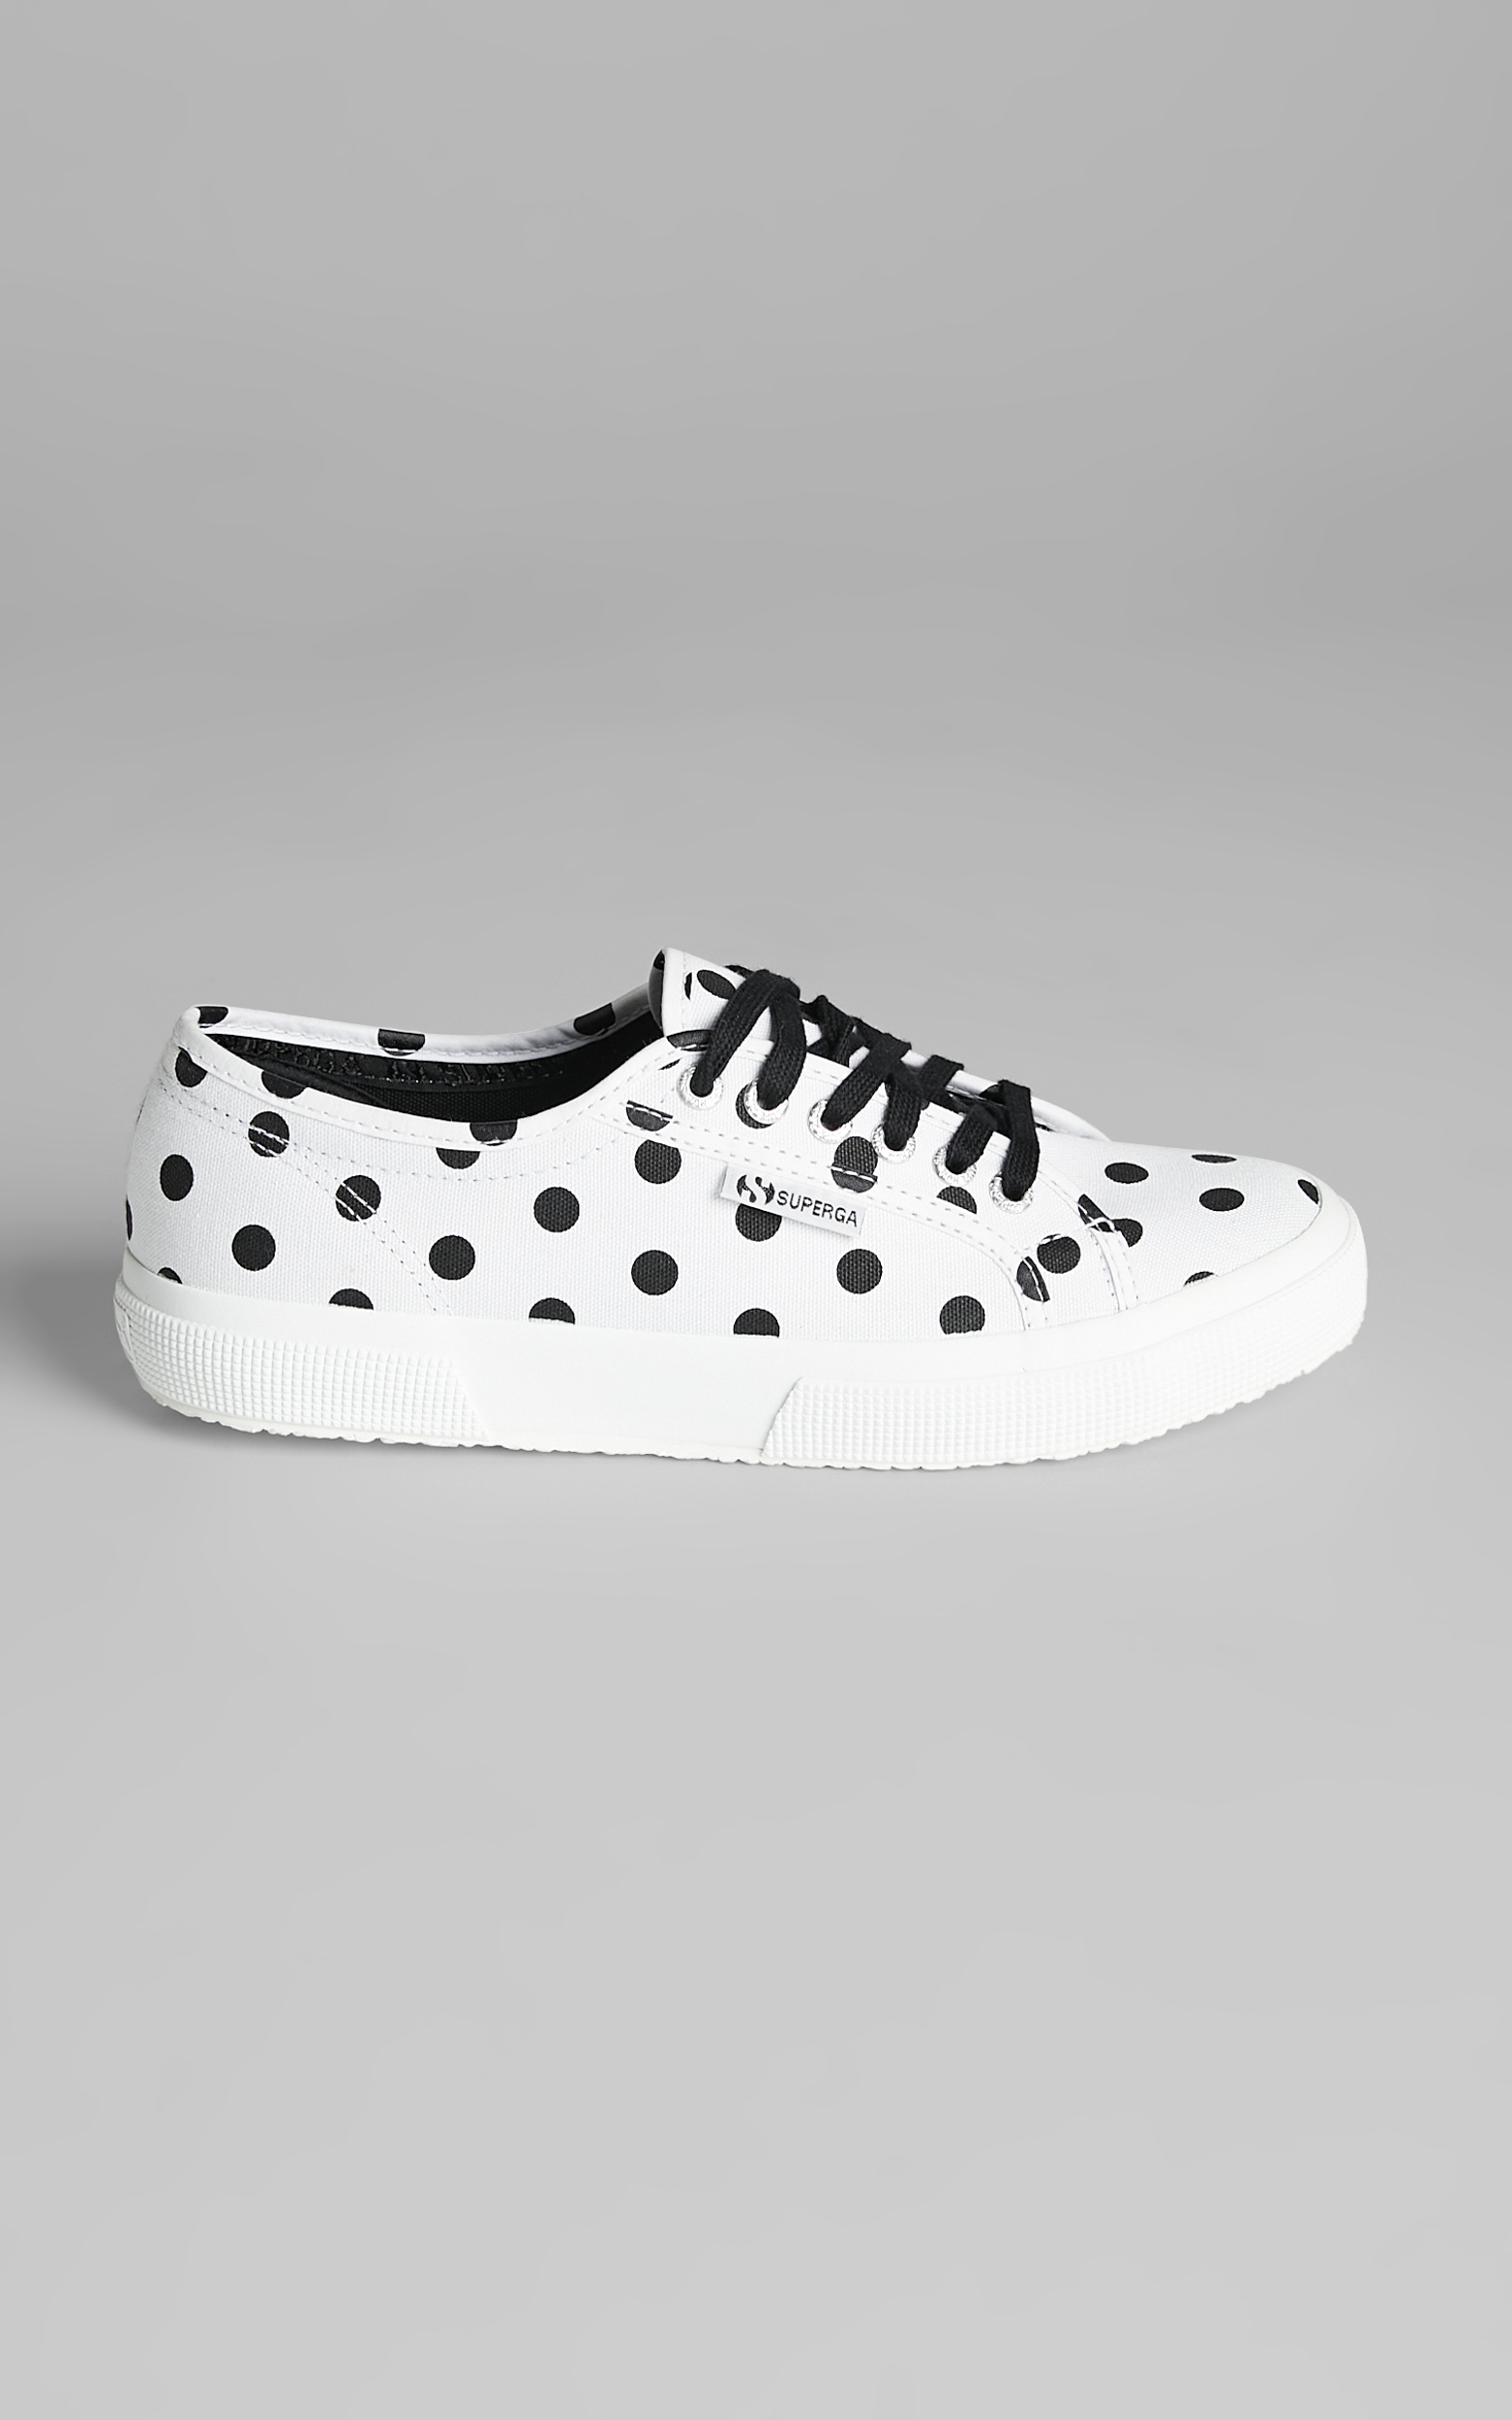 Superga - 2750 Polkadots Sneakers in A3Y White Black Dots - 05, WHT1, hi-res image number null